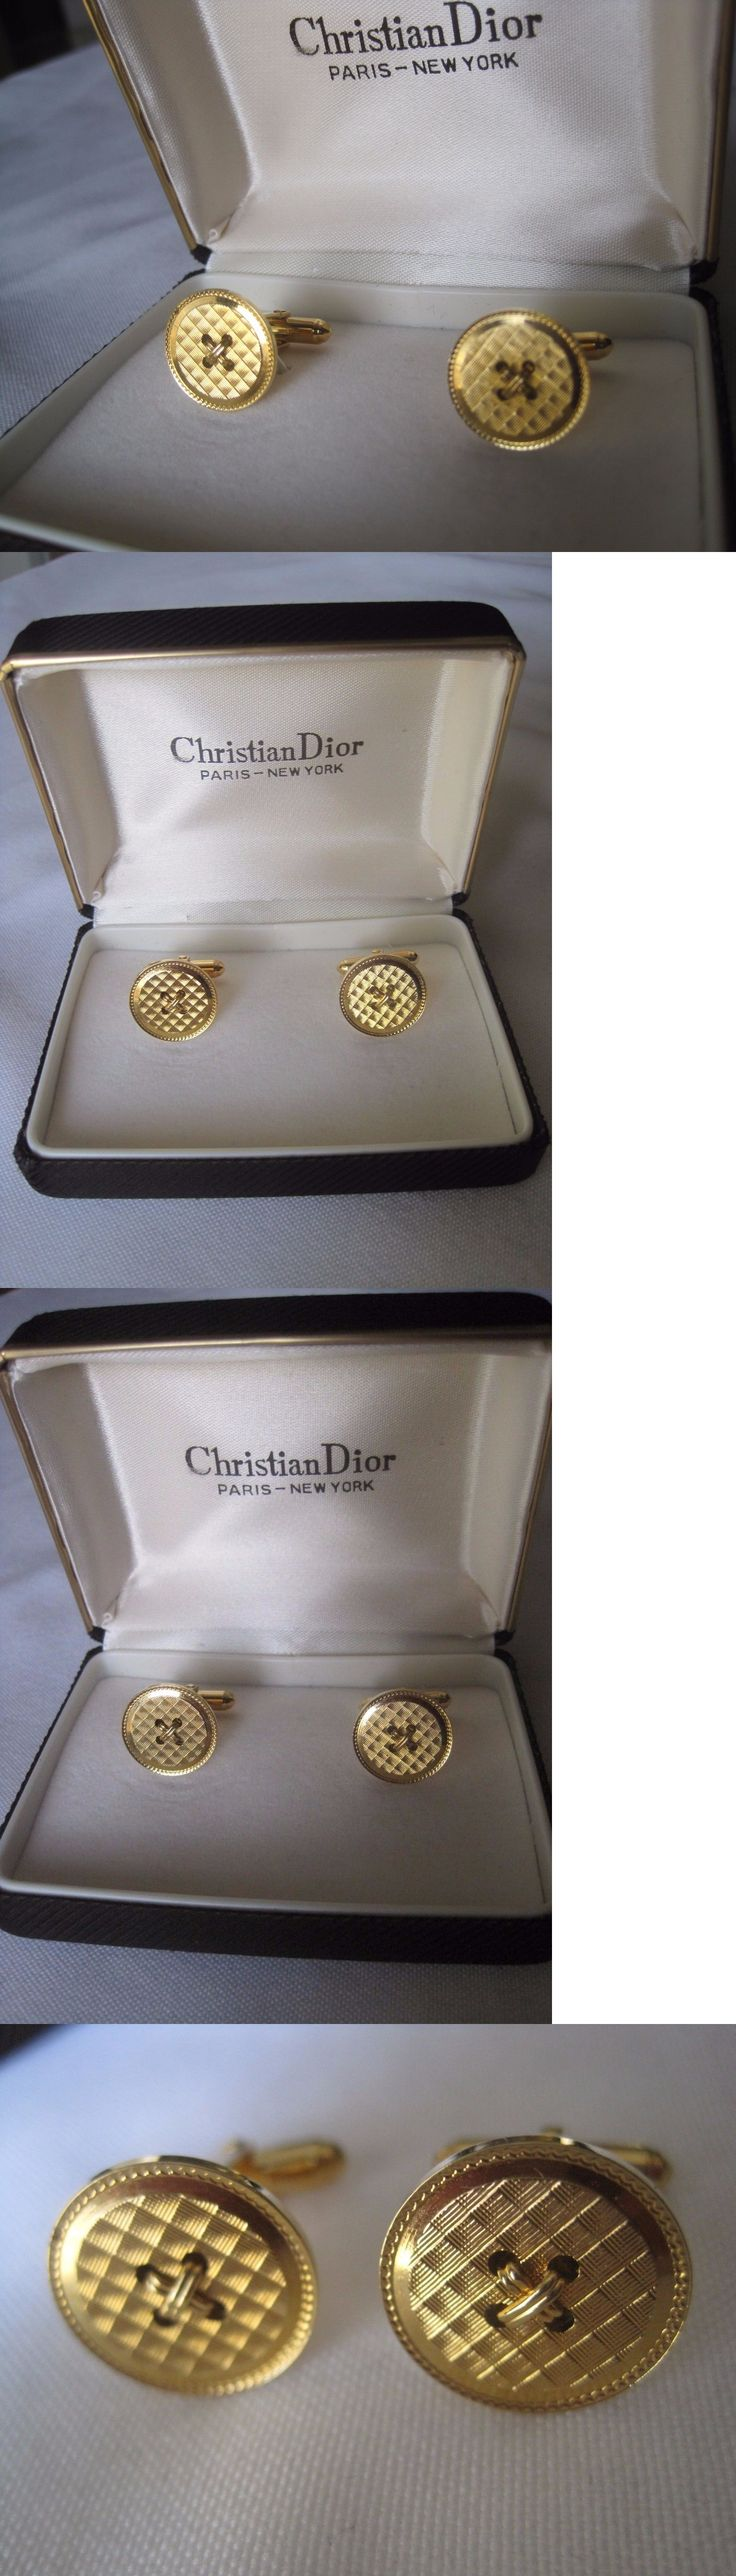 Cufflinks 137843: Christian Dior Goldtone Buttonstyle Cufflinks, New Old  Stock